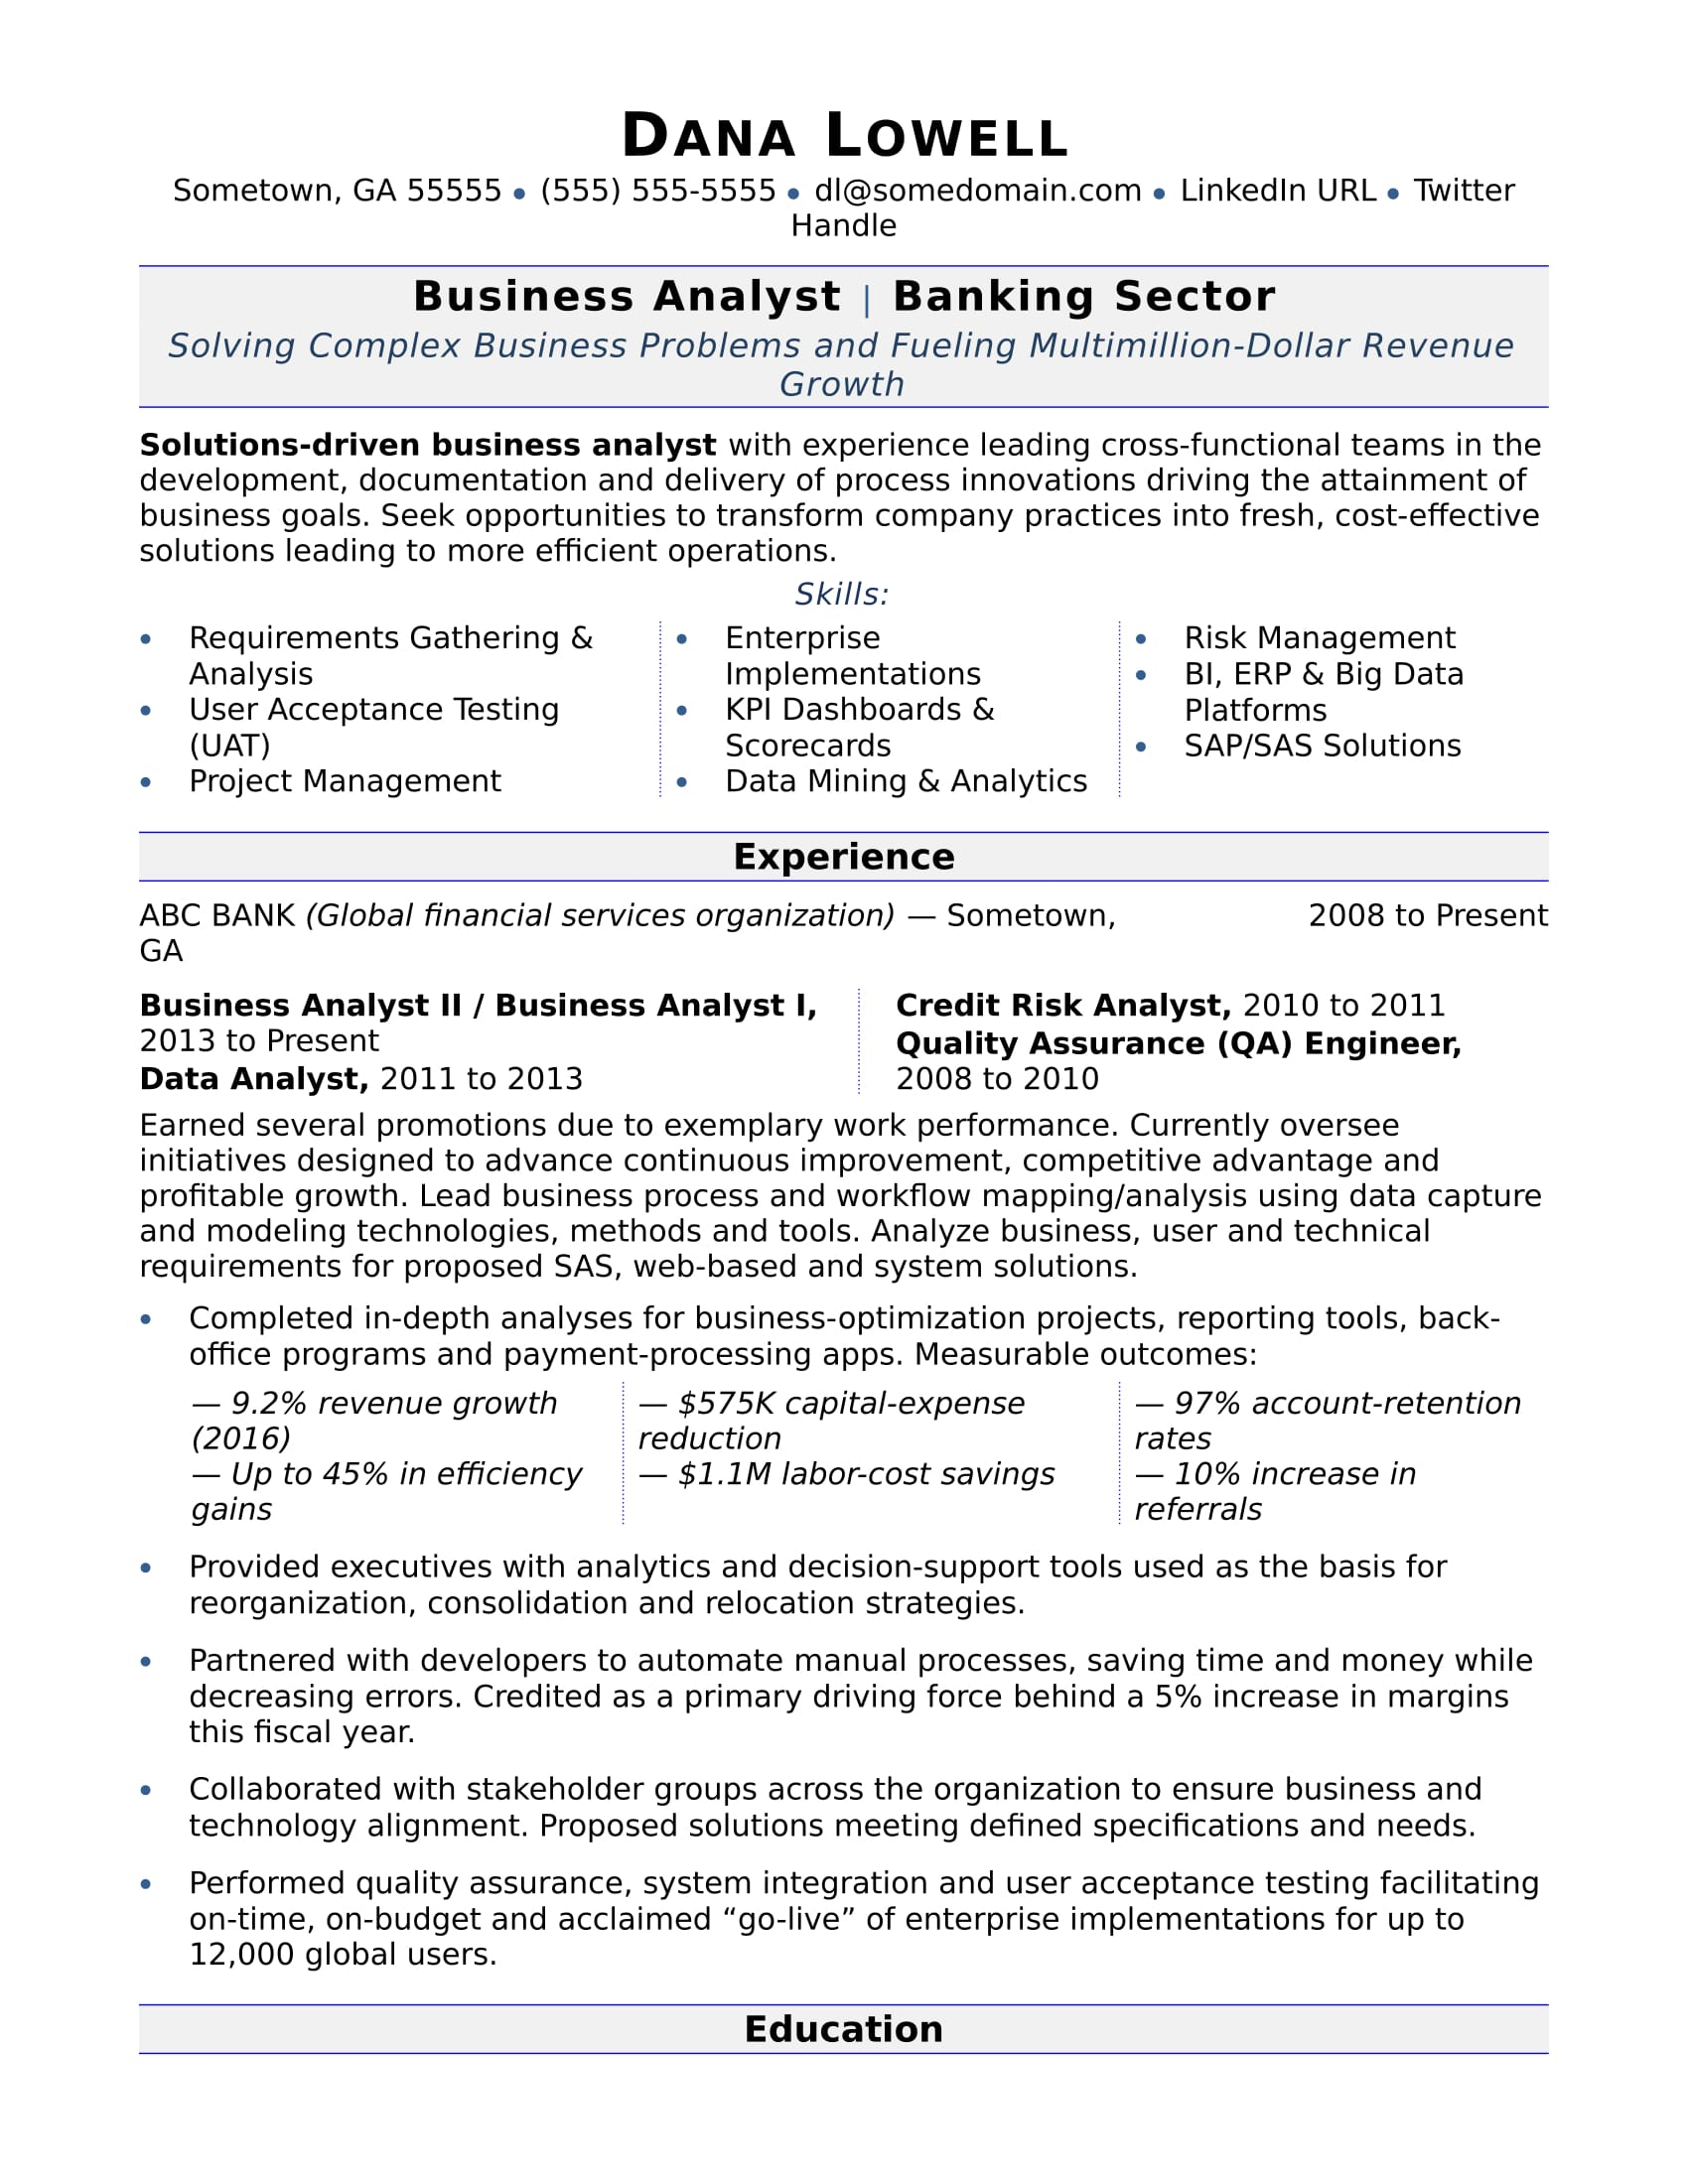 business analyst resume sample monster businessanalyst clinical research format for Resume Business Analyst Resume 2020